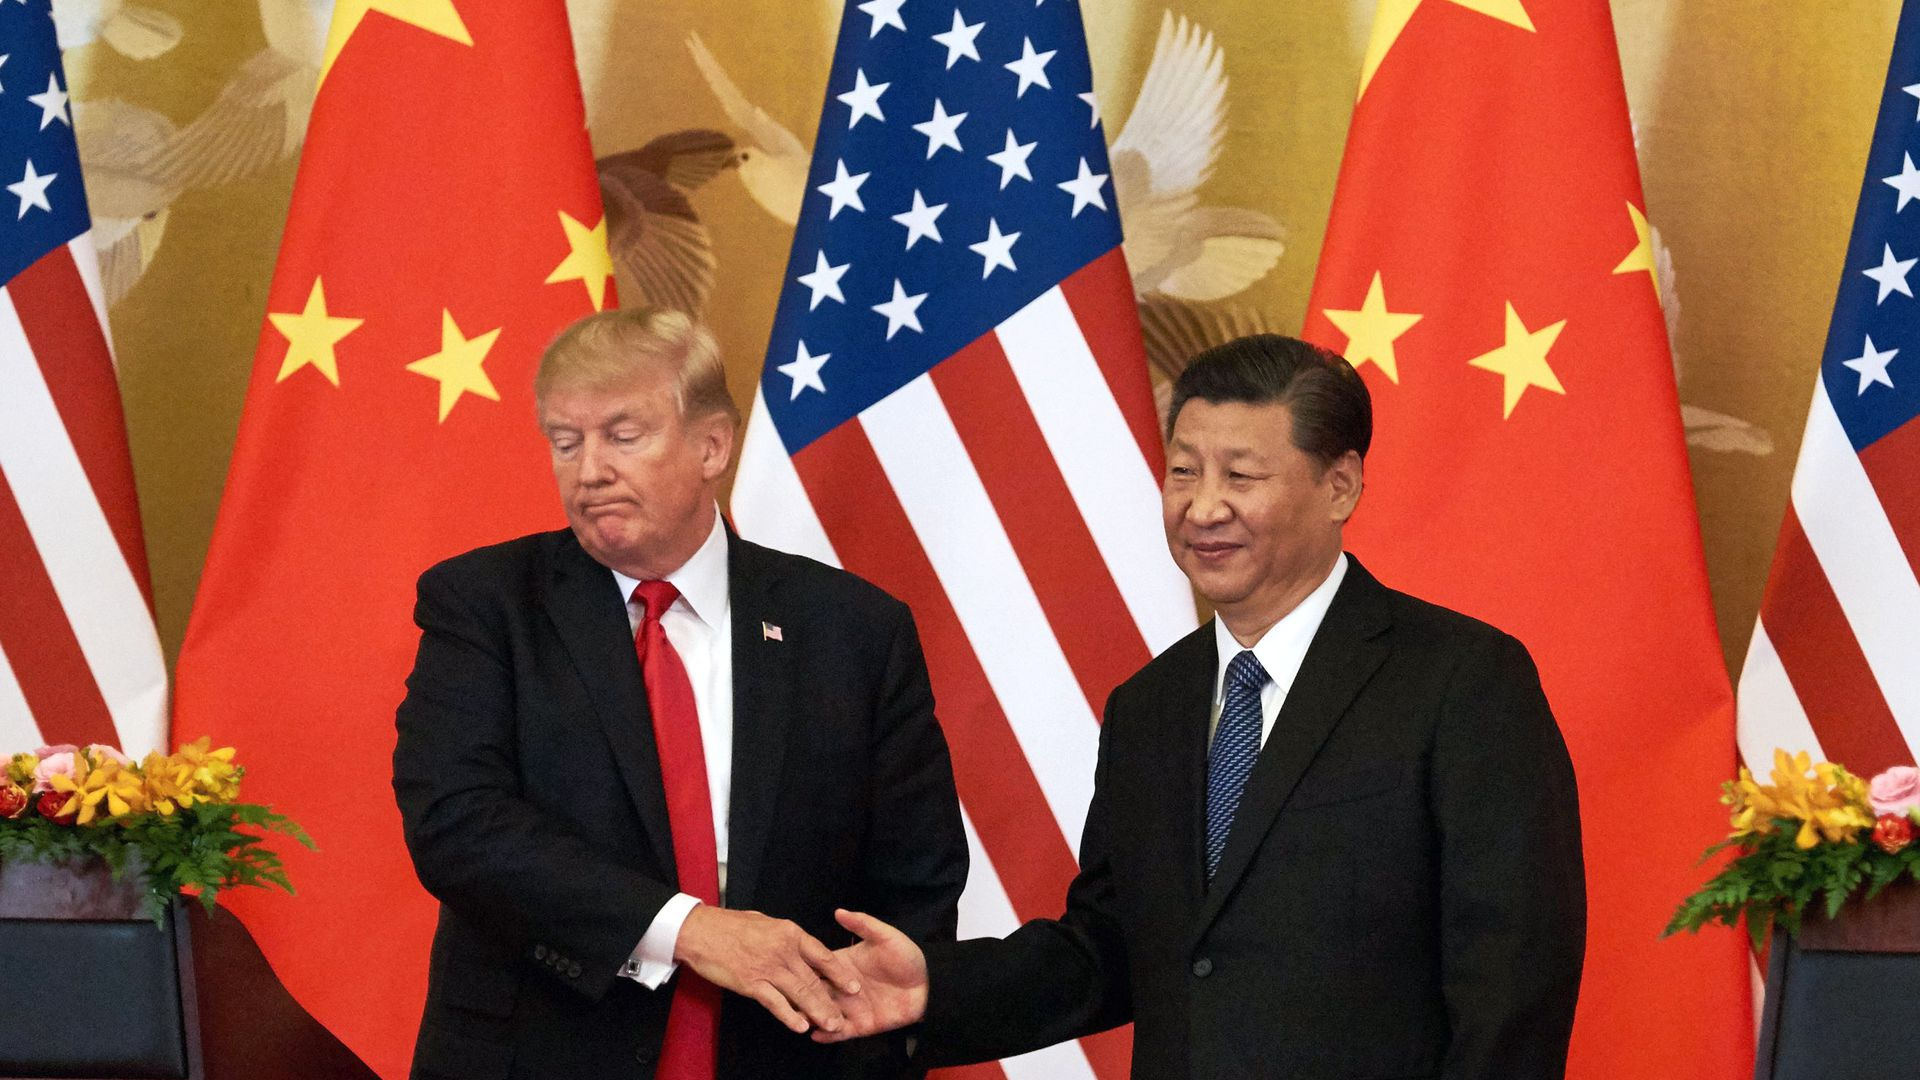 Donald Trump grimaces while shaking hands with Xi Jinping before American and Chinese flags.